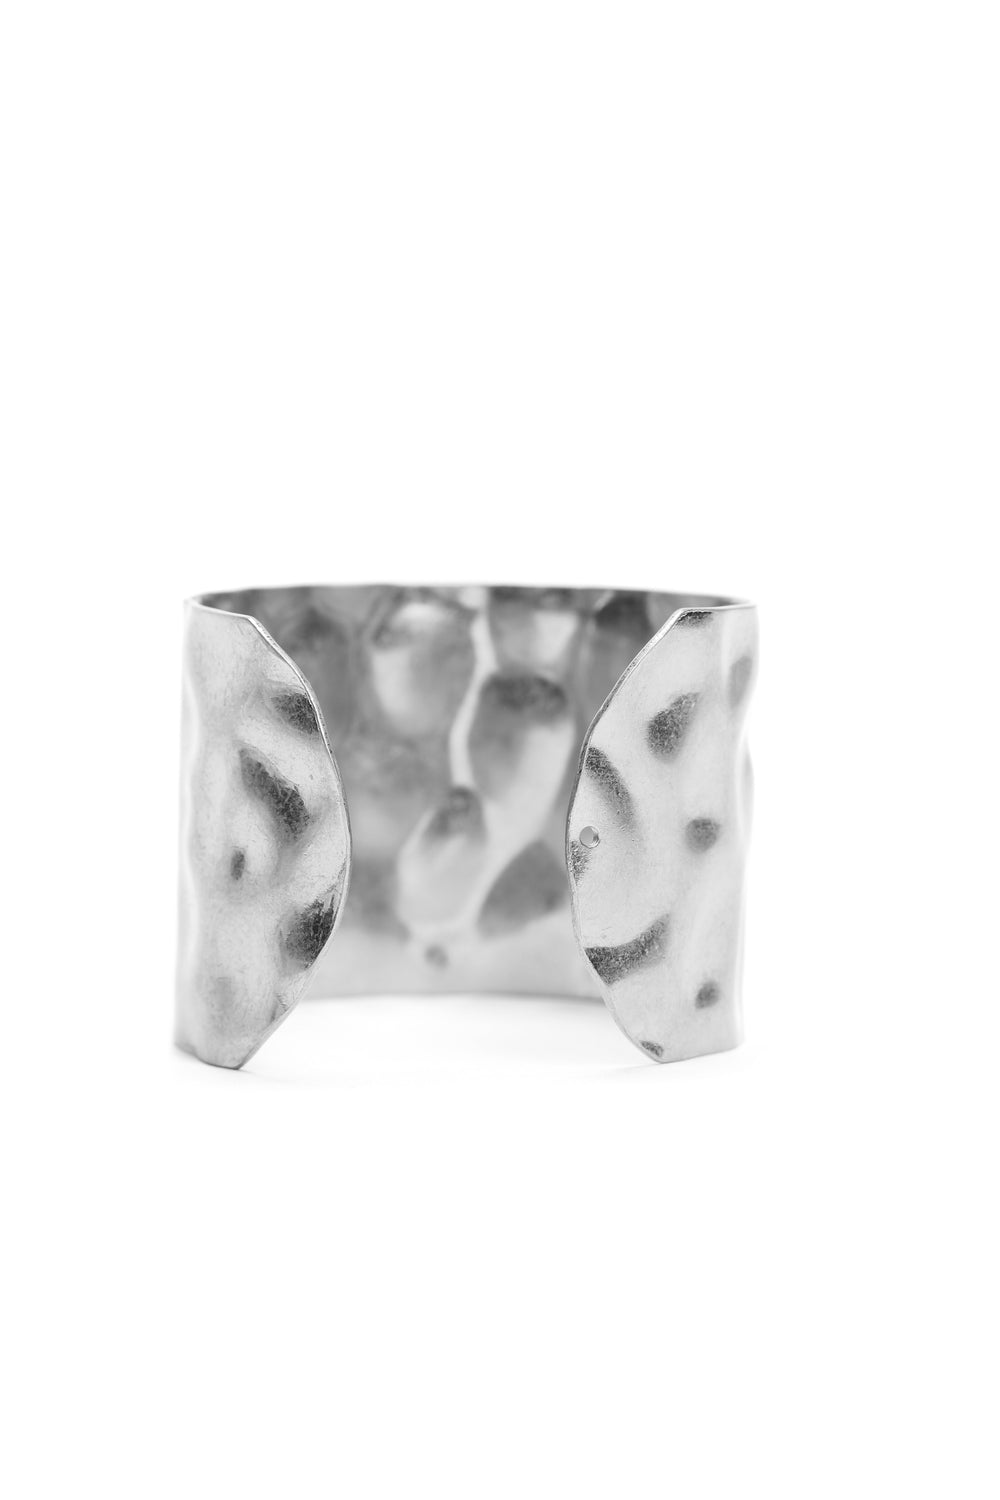 Text Her Cuff - Silver